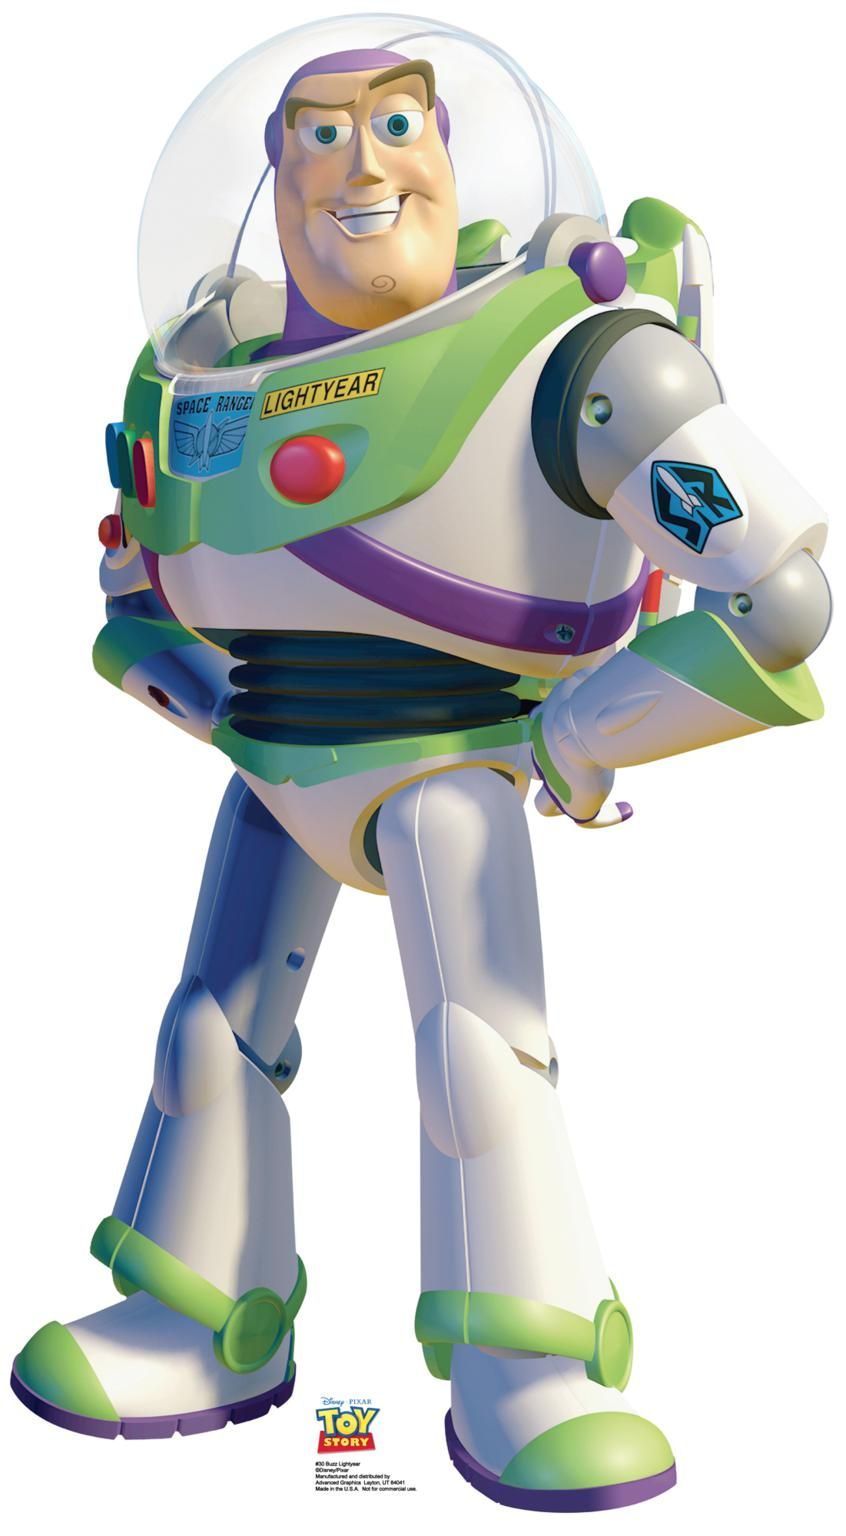 Day 5 Favorite Hero Buzz Lightyear From Toy Story Buzz May Not Have Actual Super Powers But He Is Alw Toy Story Buzz Toy Story Buzz Lightyear Disney Toys